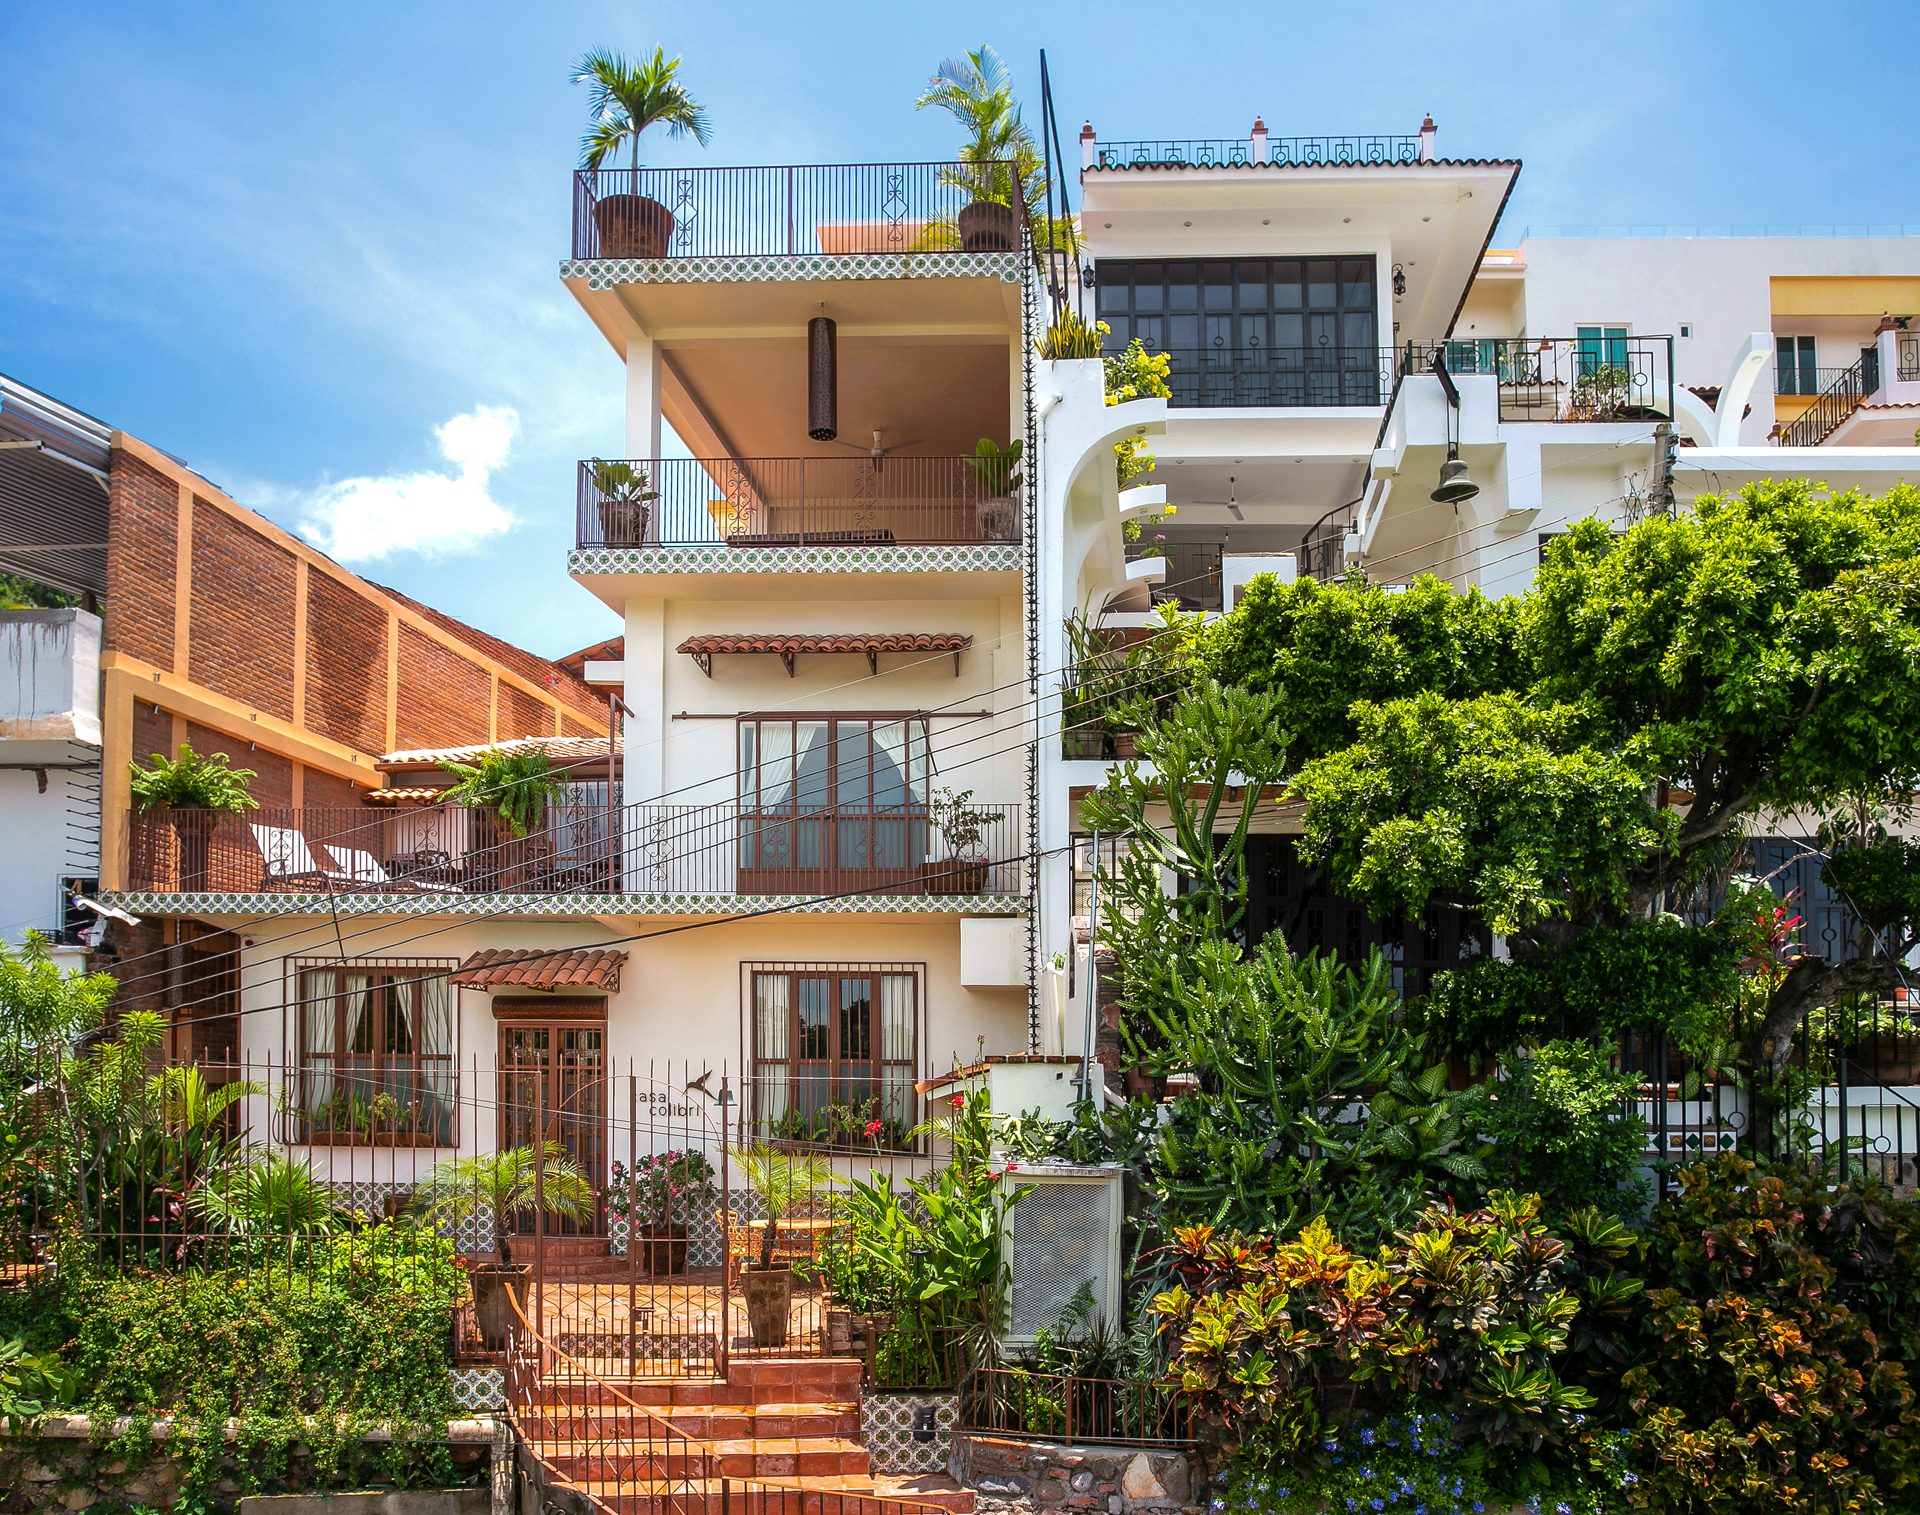 FEATURED LISTING: 426 calle Francisca Rodríguez Puerto Vallarta, Mexico